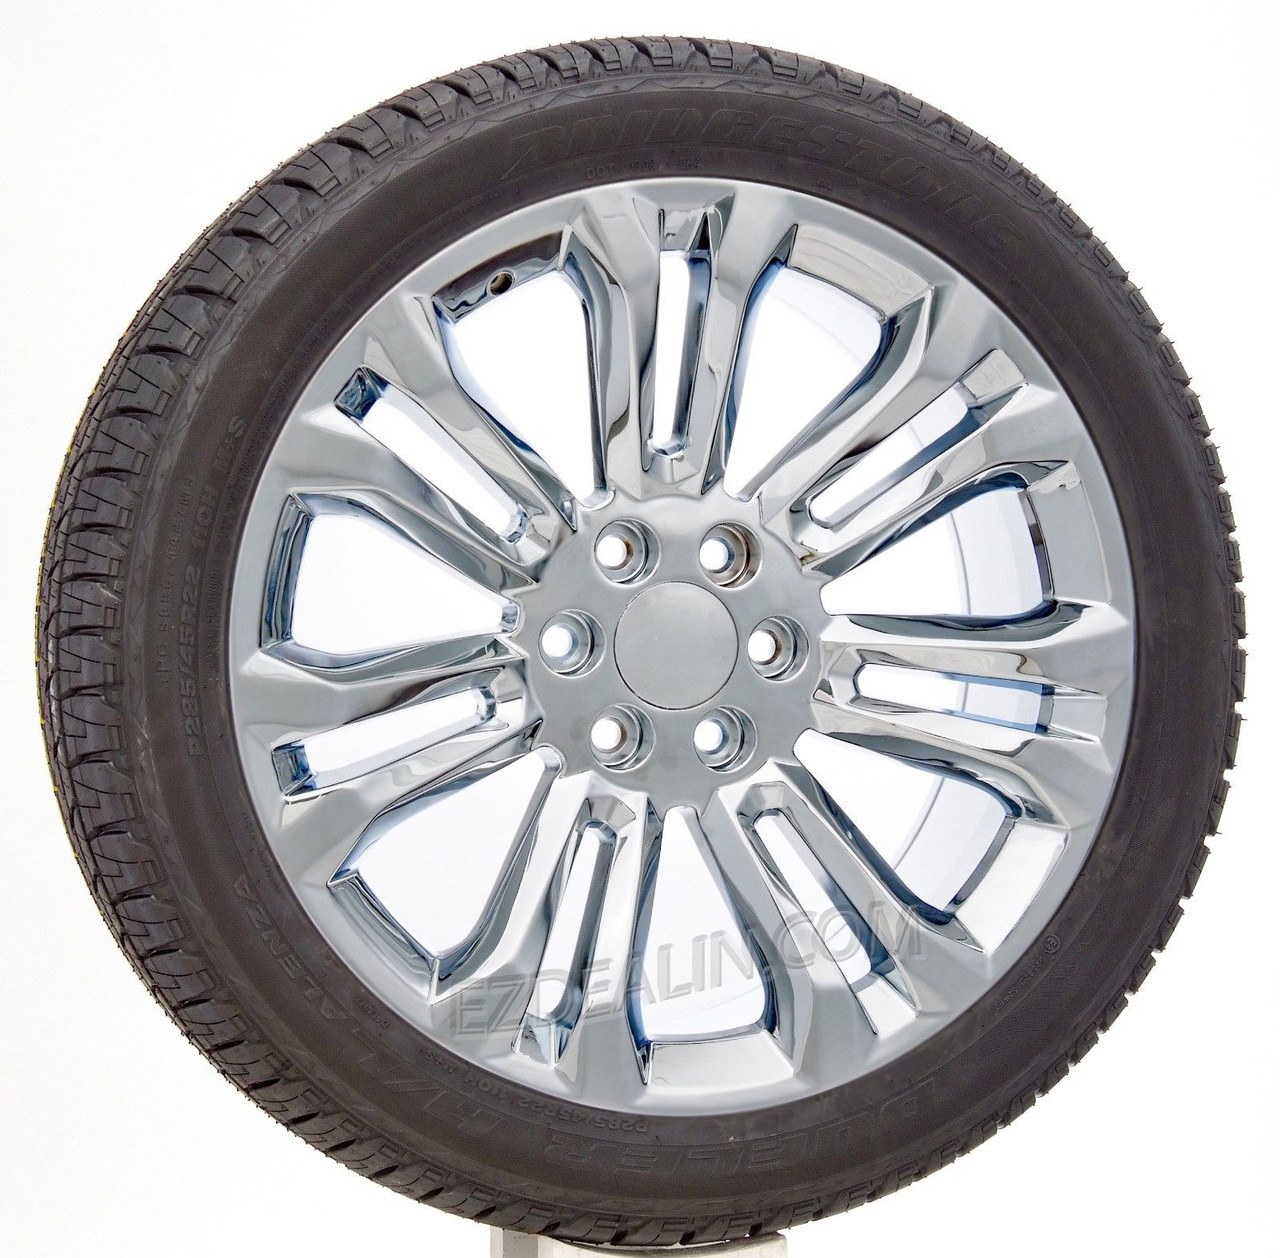 "Chrome 22"" New Style Split Spoke Wheels with Bridgestone Tires for GMC Sierra, Yukon, Denali - New Set of 4"